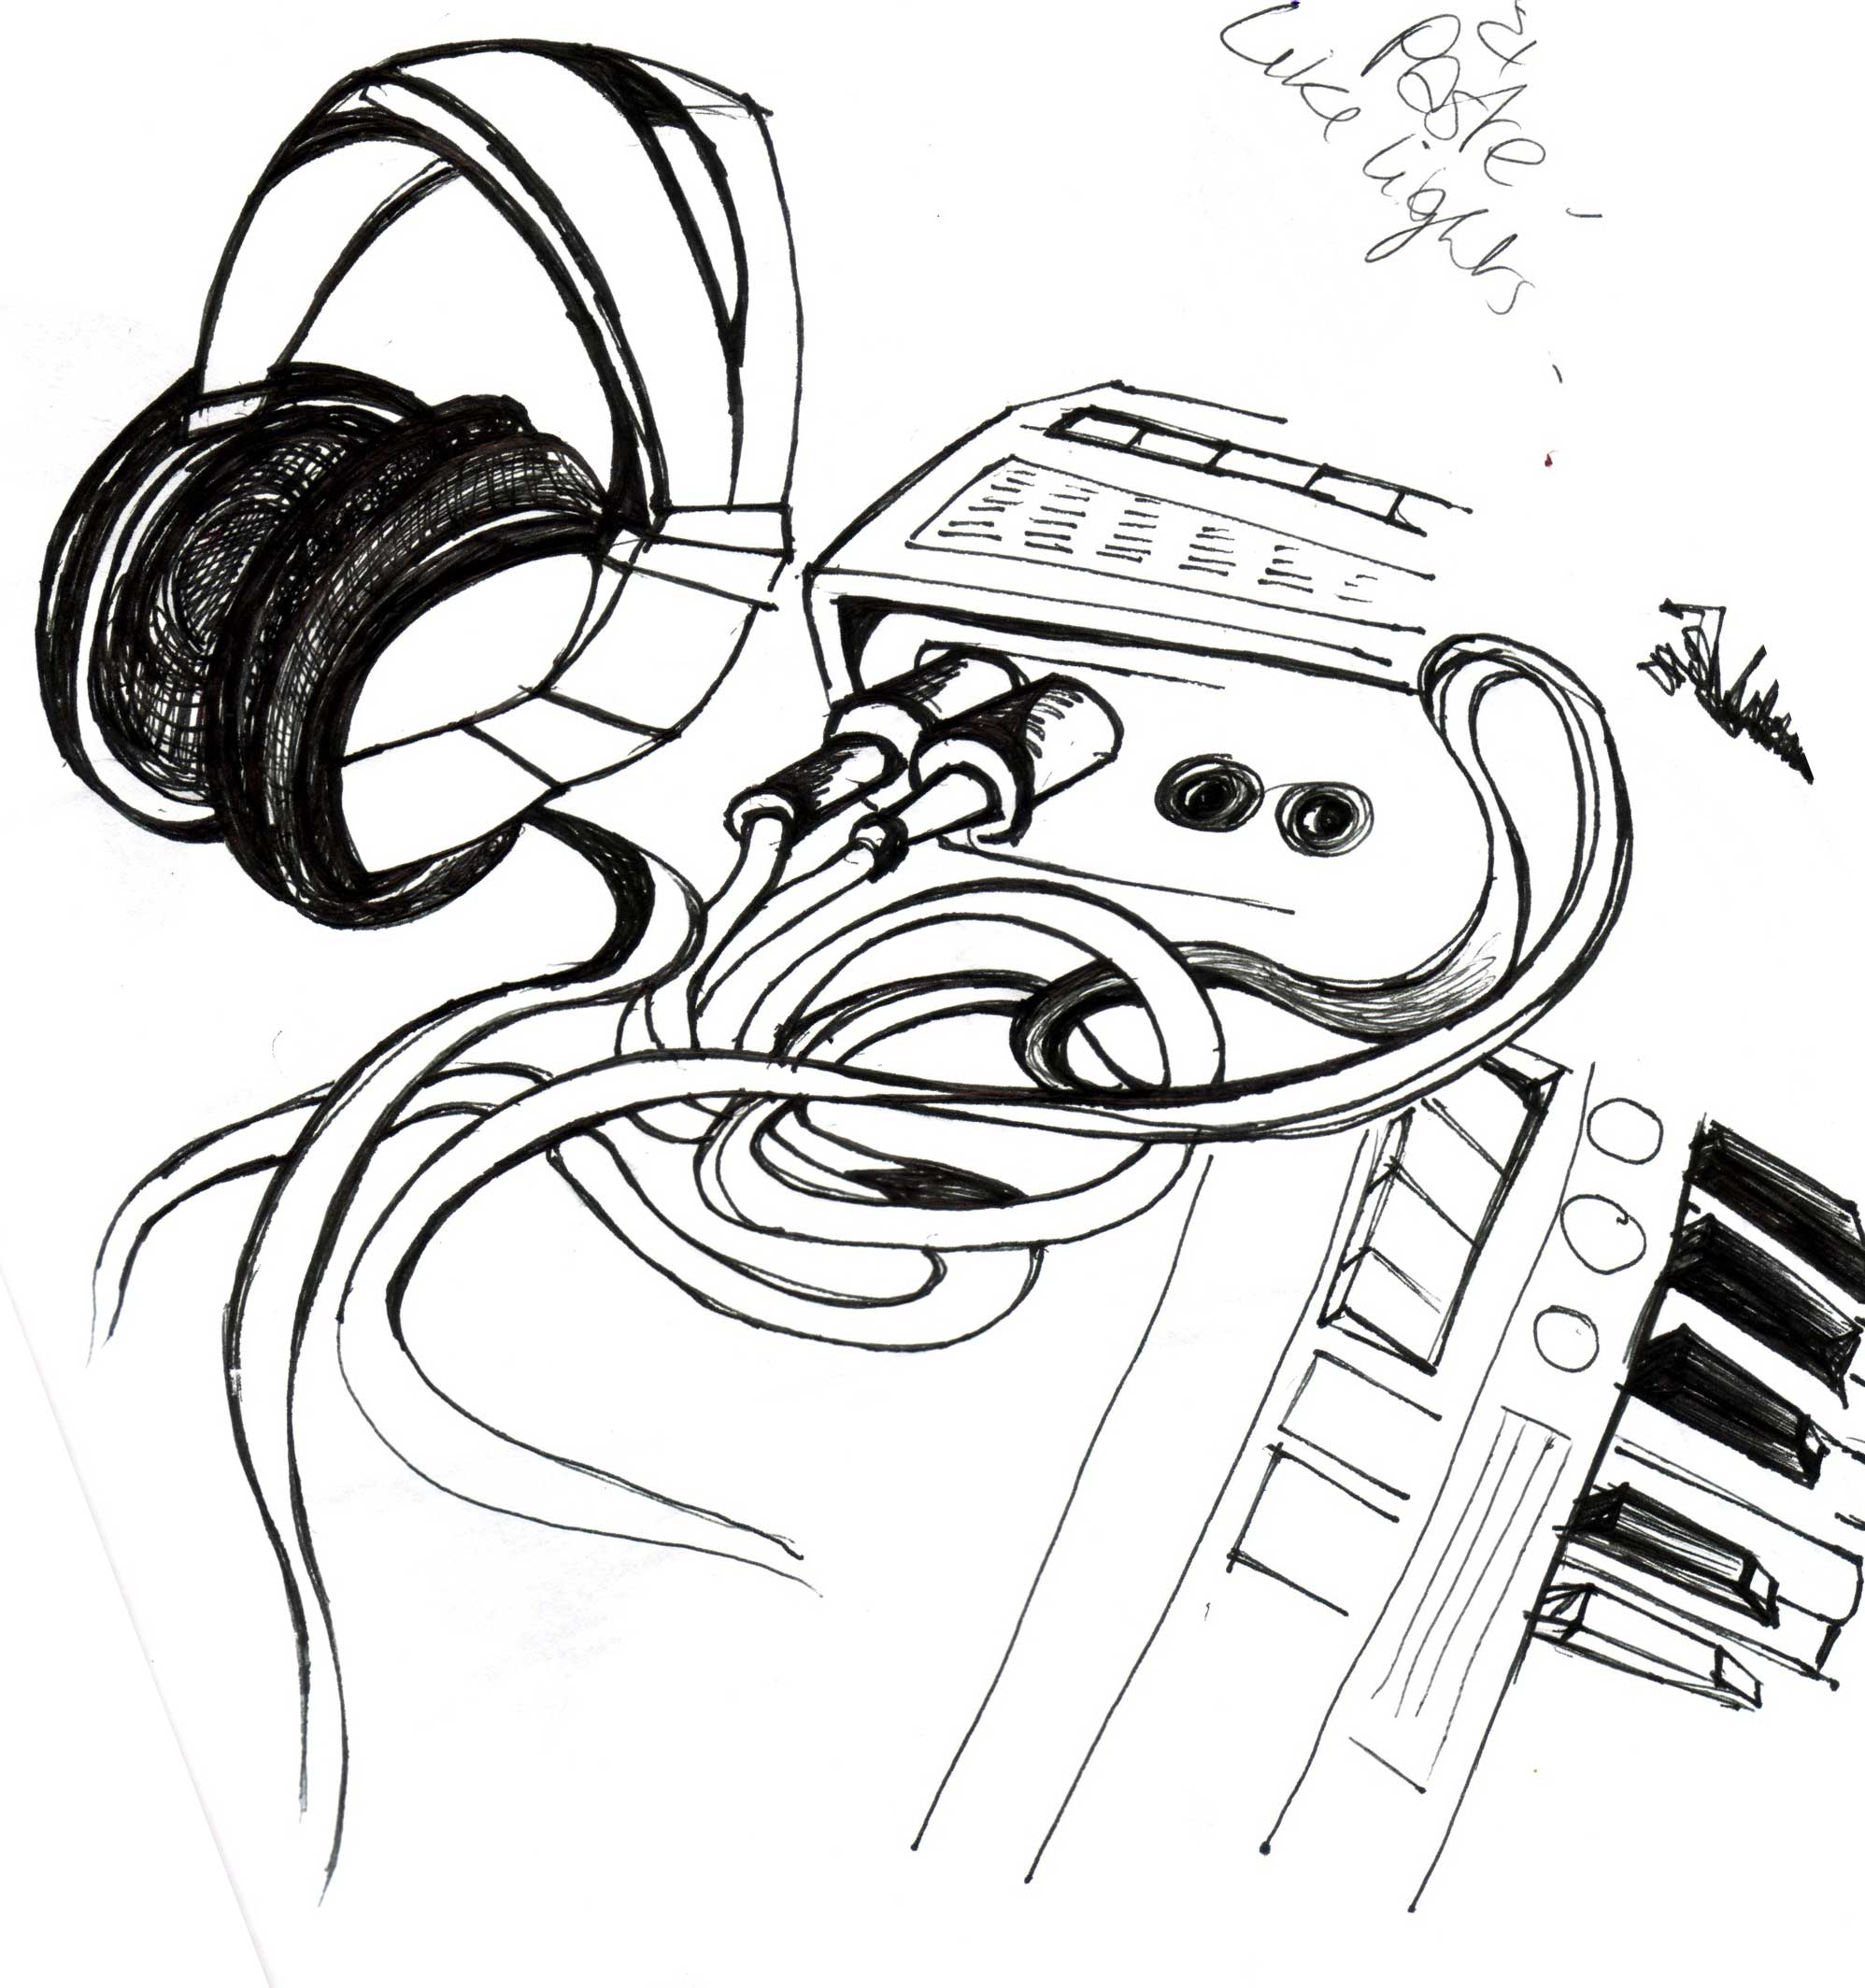 Wires Drawing At Getdrawings